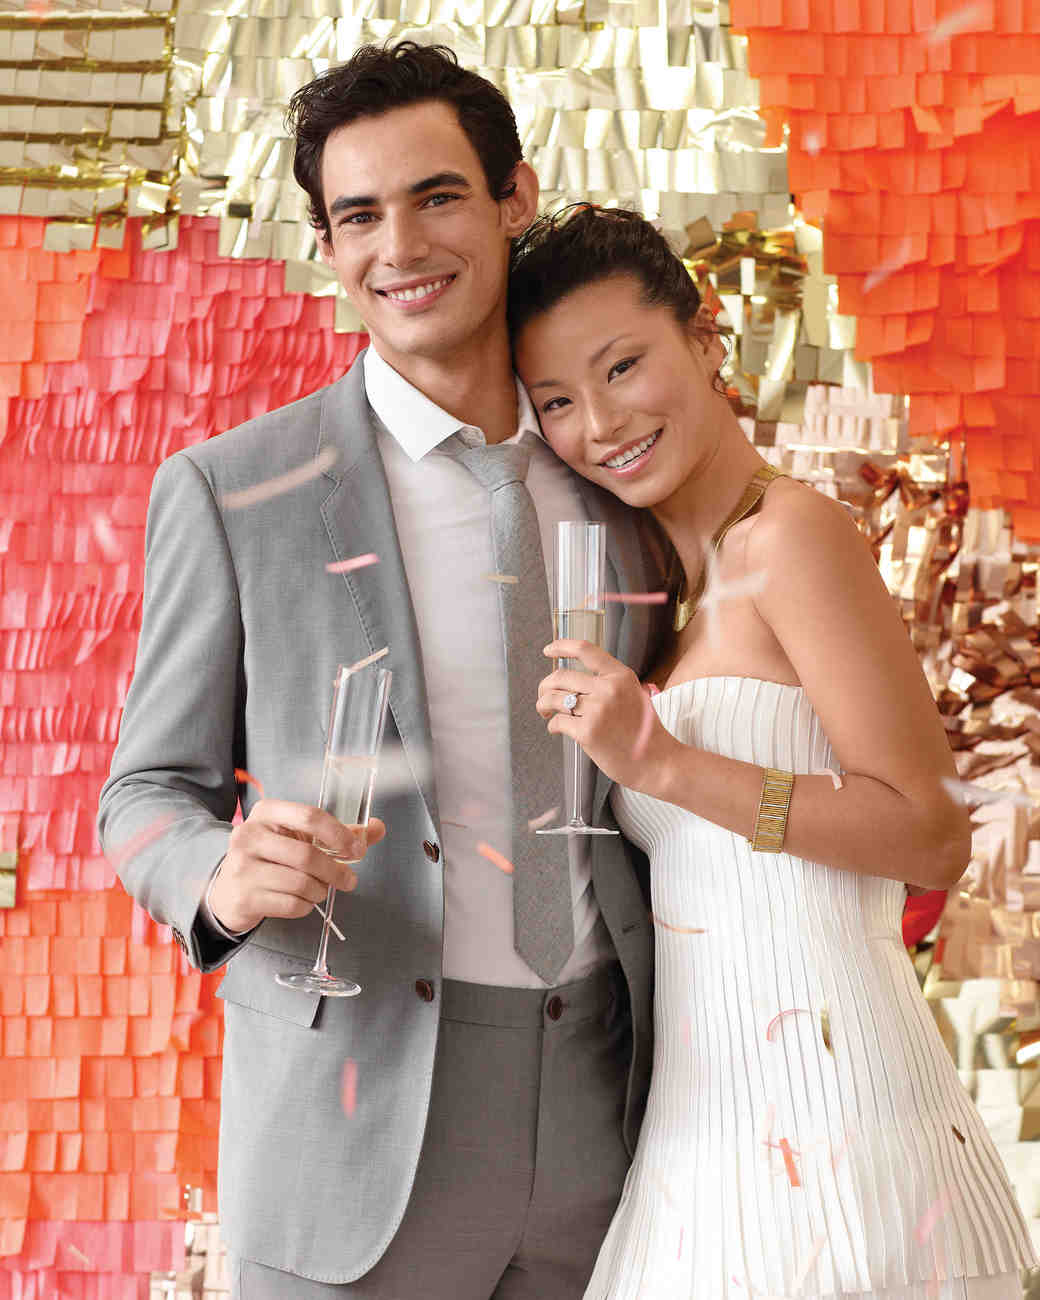 Wedding Photo Booth Backdrop Ideas: 15 DIY Photo Booth Backdrops To Upgrade Your Wedding